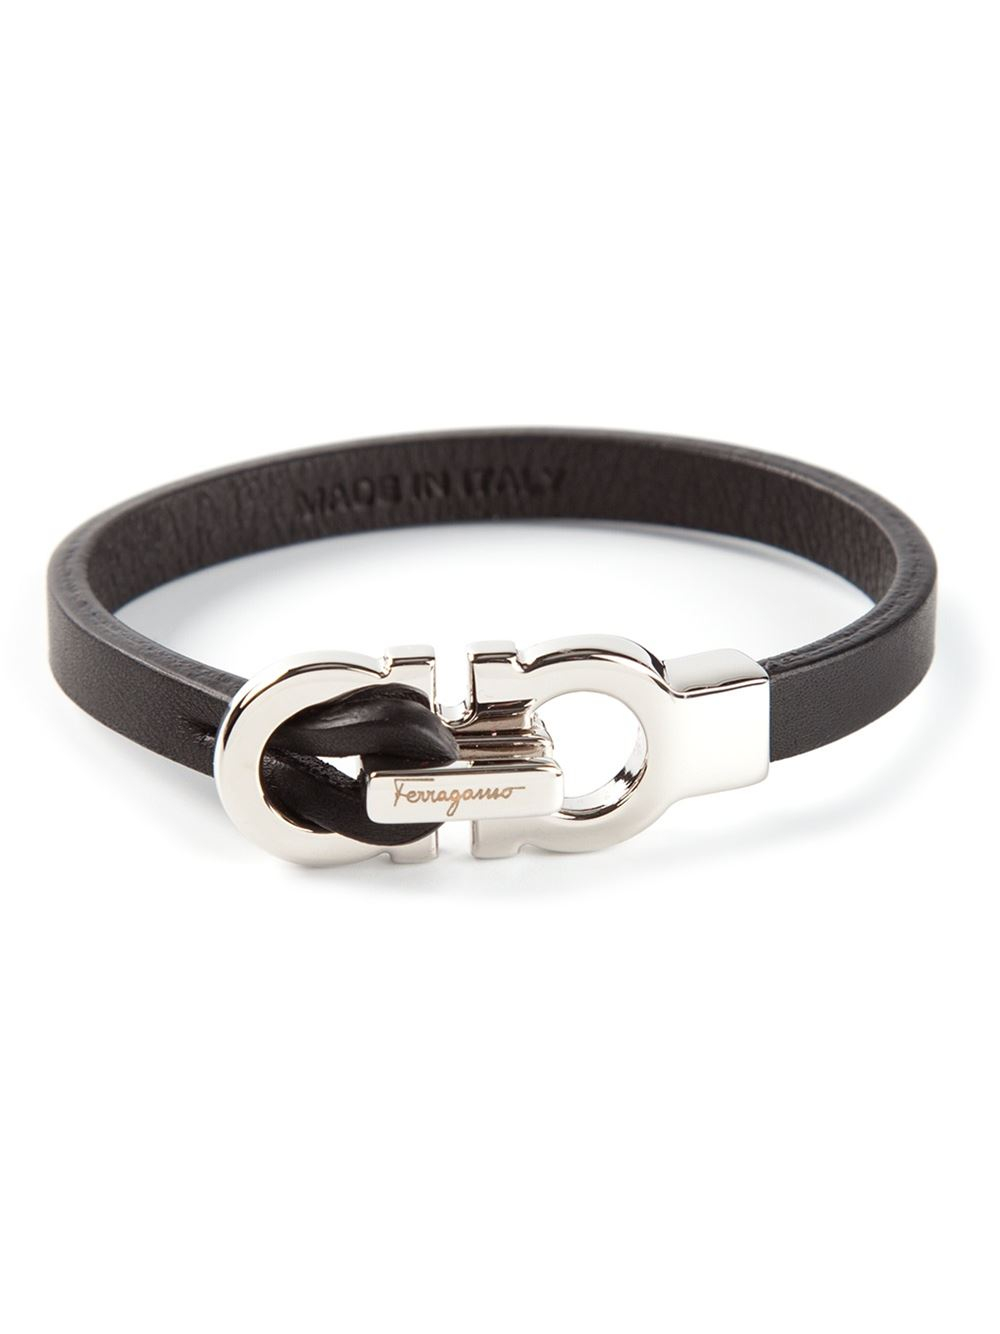 Ferragamo Gancini Bracelet In Black For Men Lyst